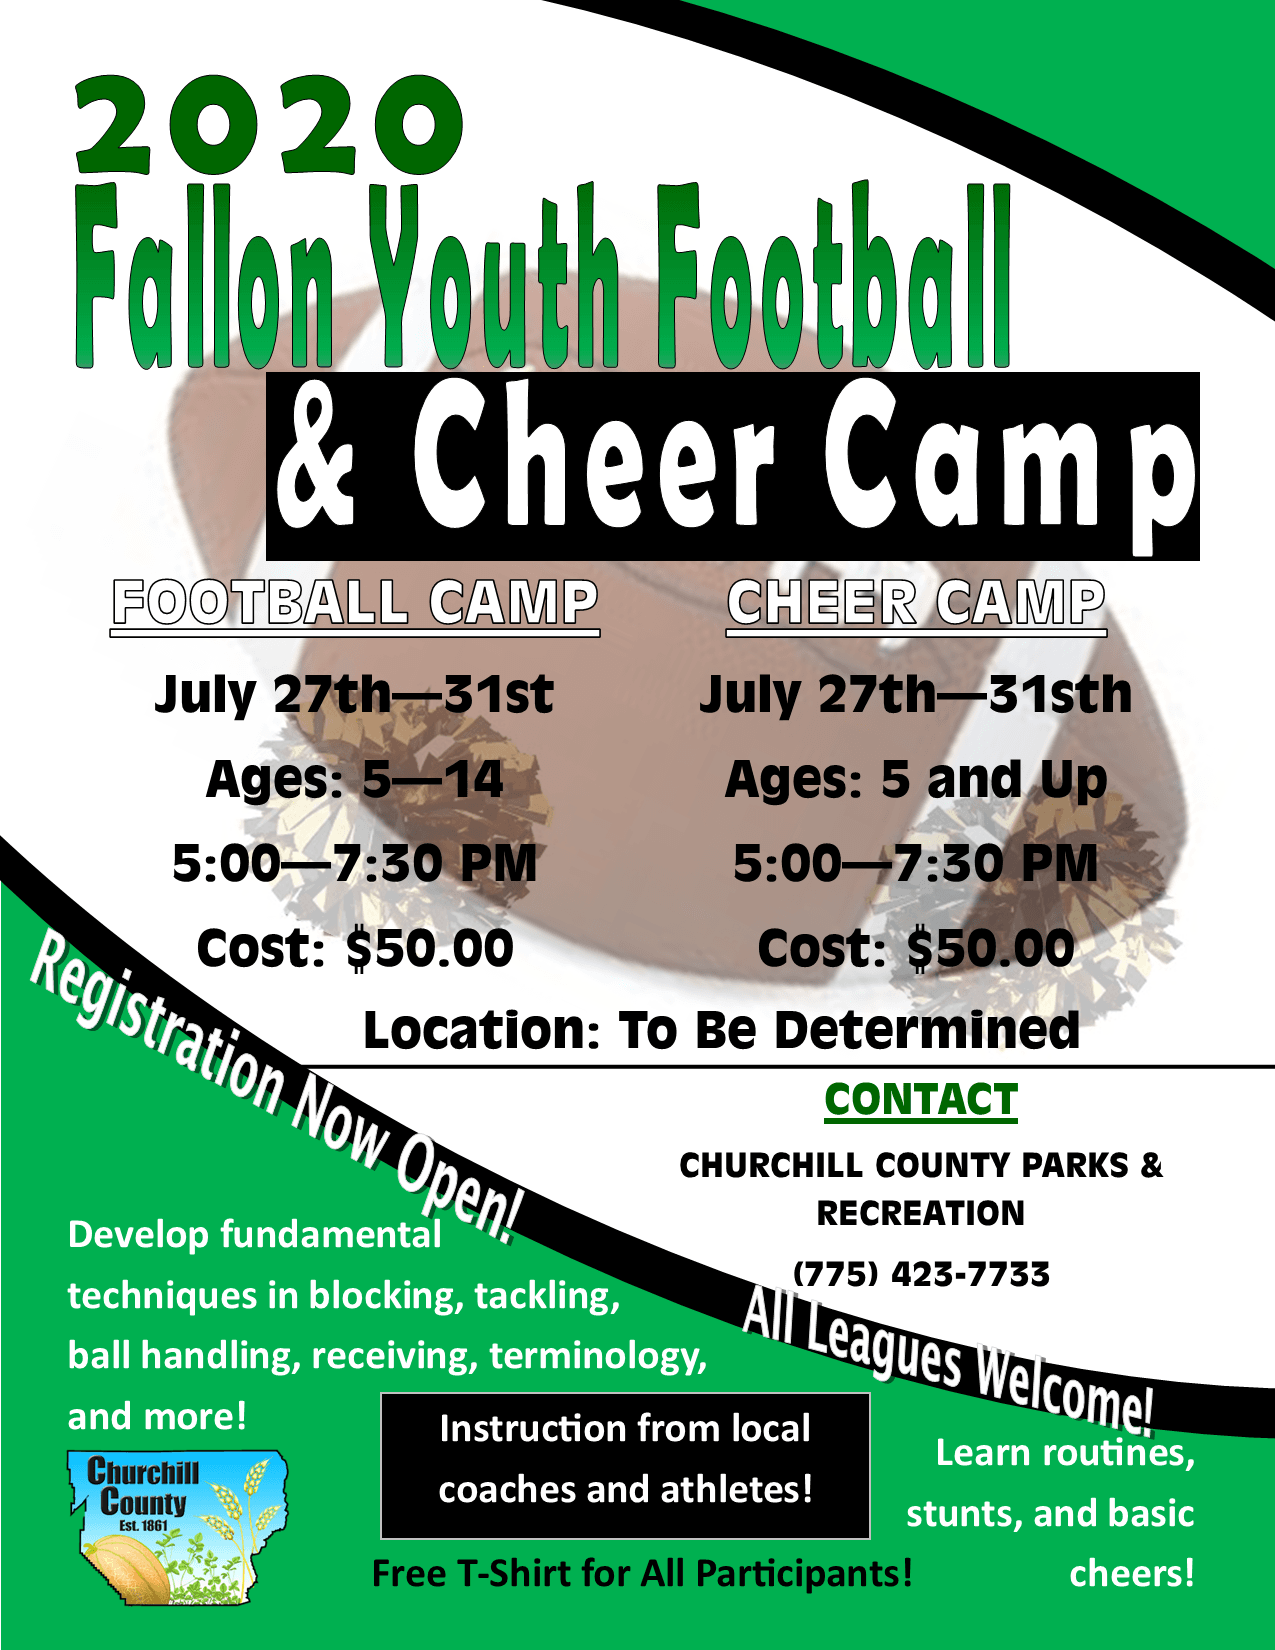 FYFL Football - Cheer Camp (2020) - Flyer (Digital)